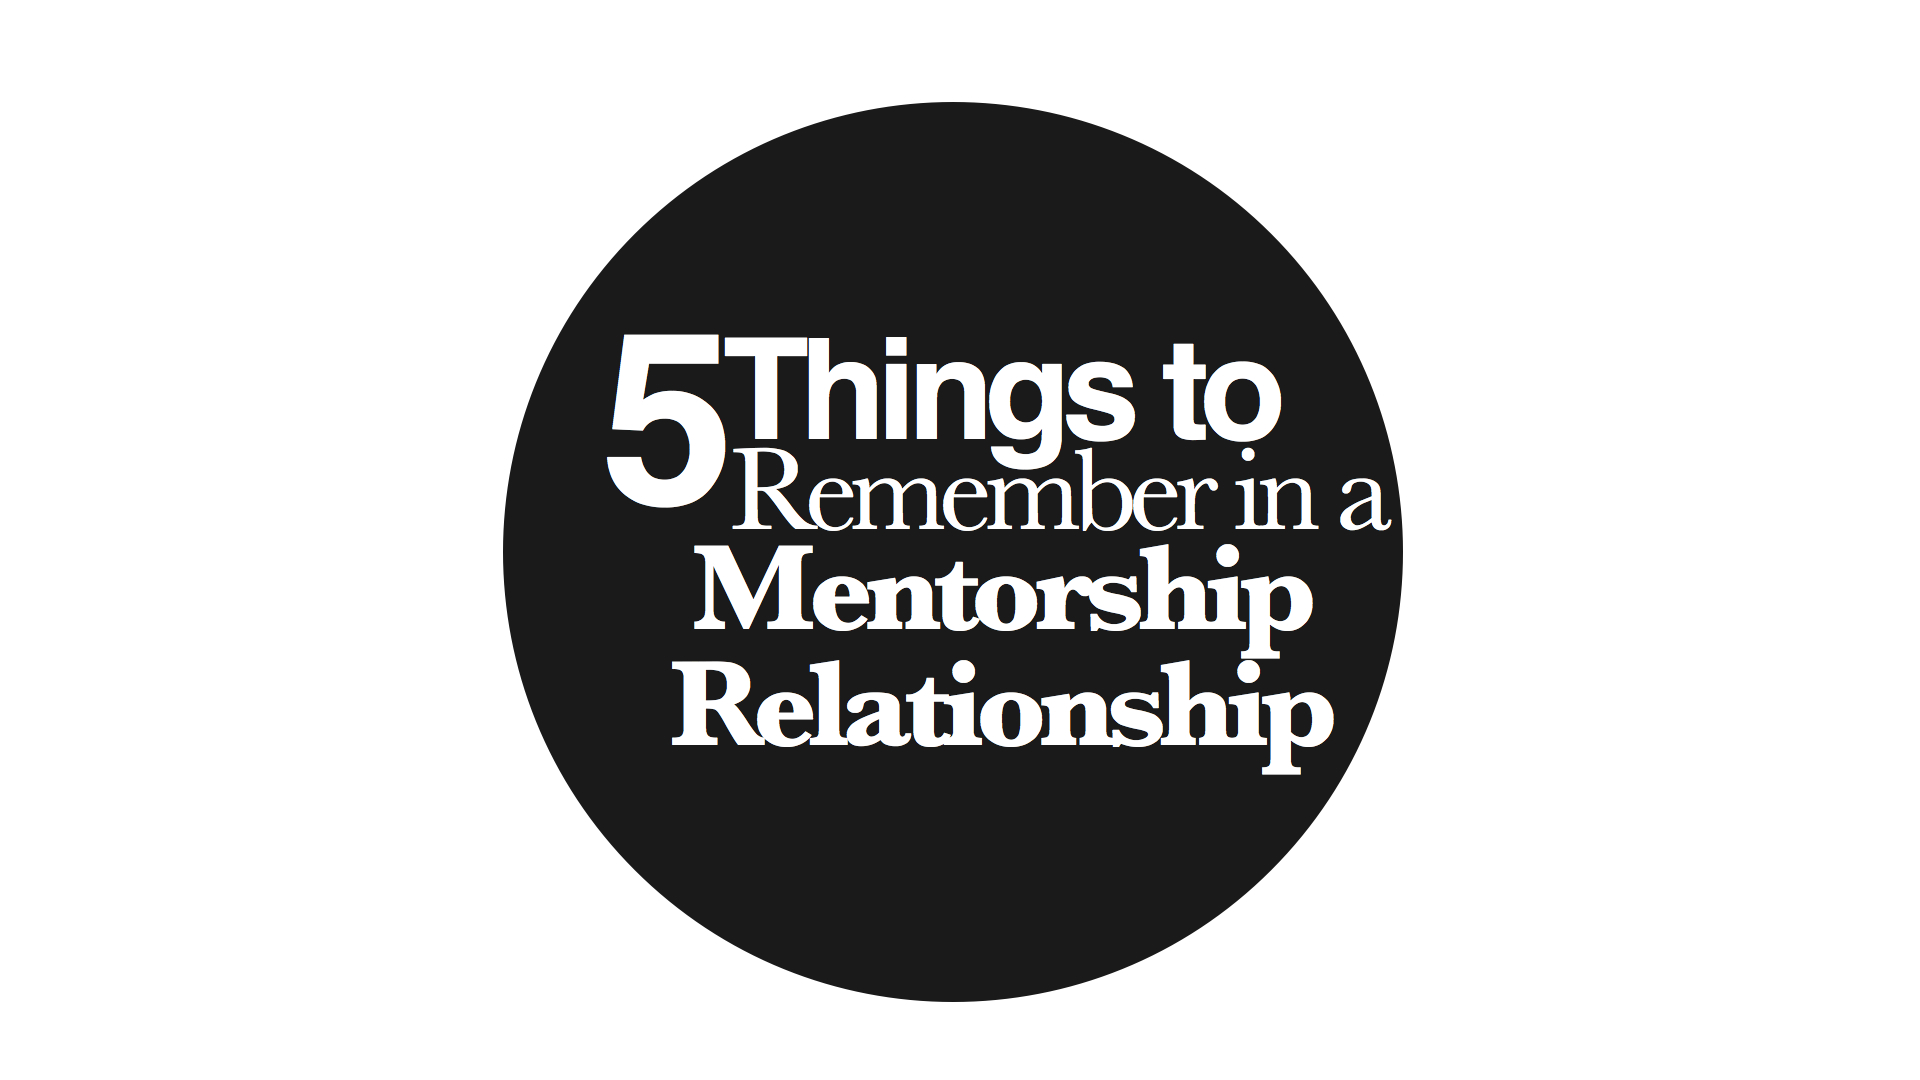 5 Things to Remember in a Mentorship Relationship